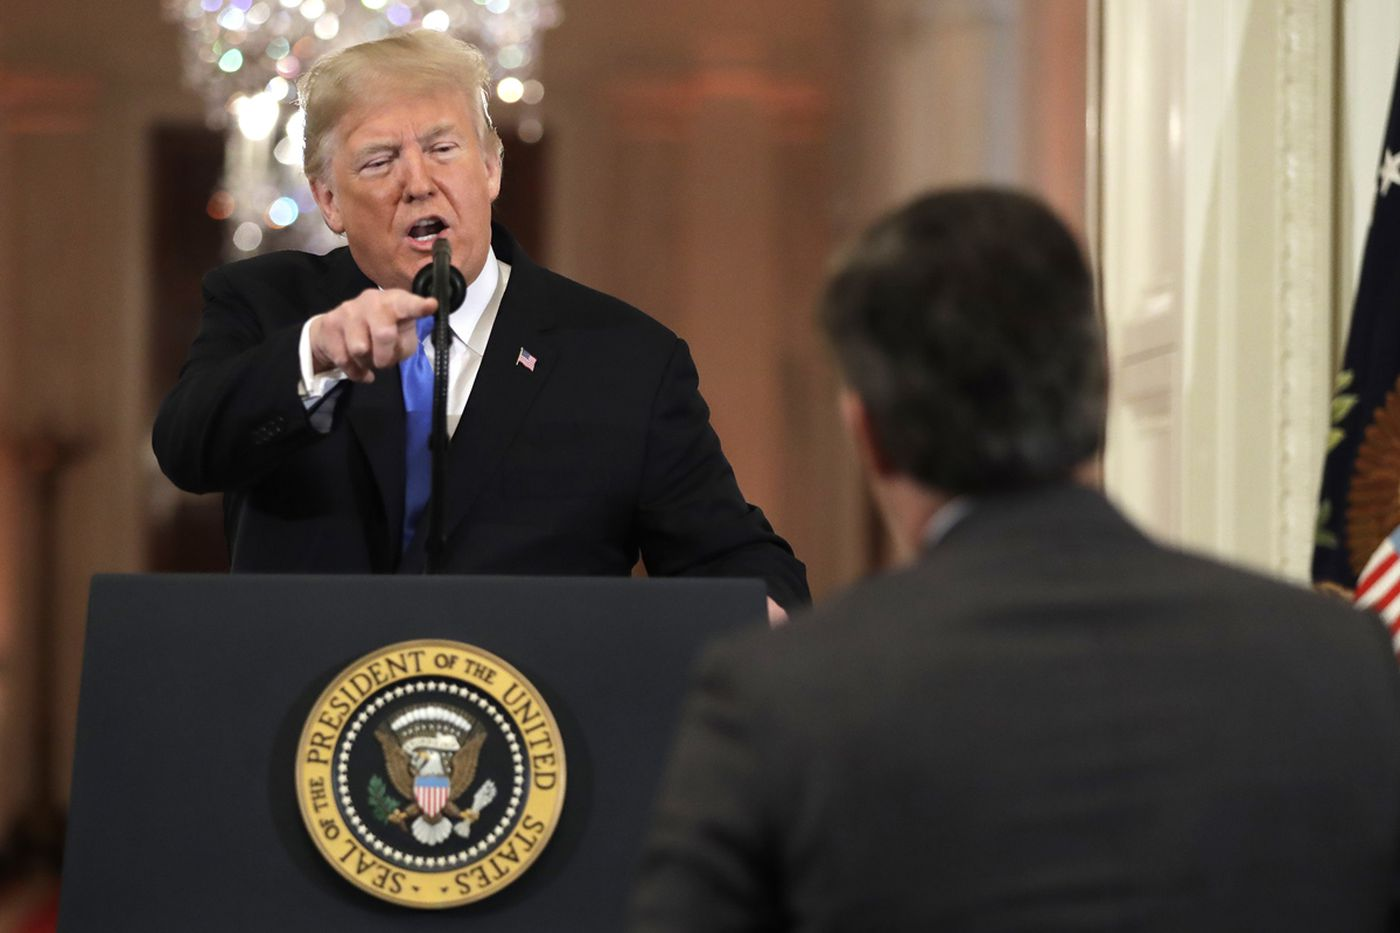 CNN reporter confronts Donald Trump, White House suspends his press pass